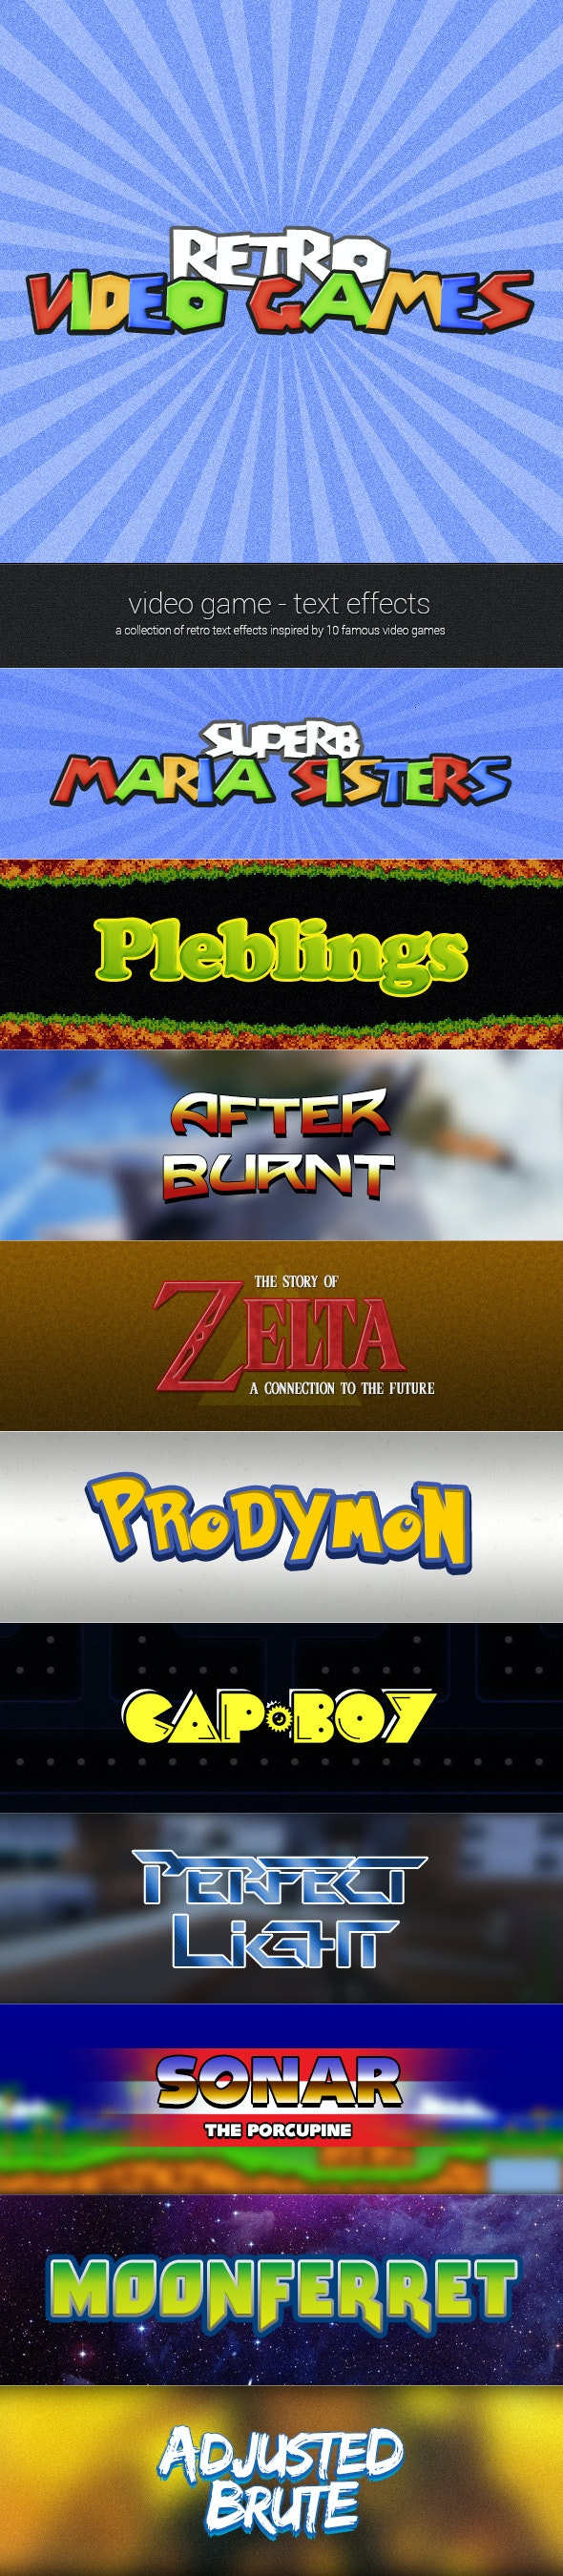 Retro Video Game - Text Effects - Text Effects Styles